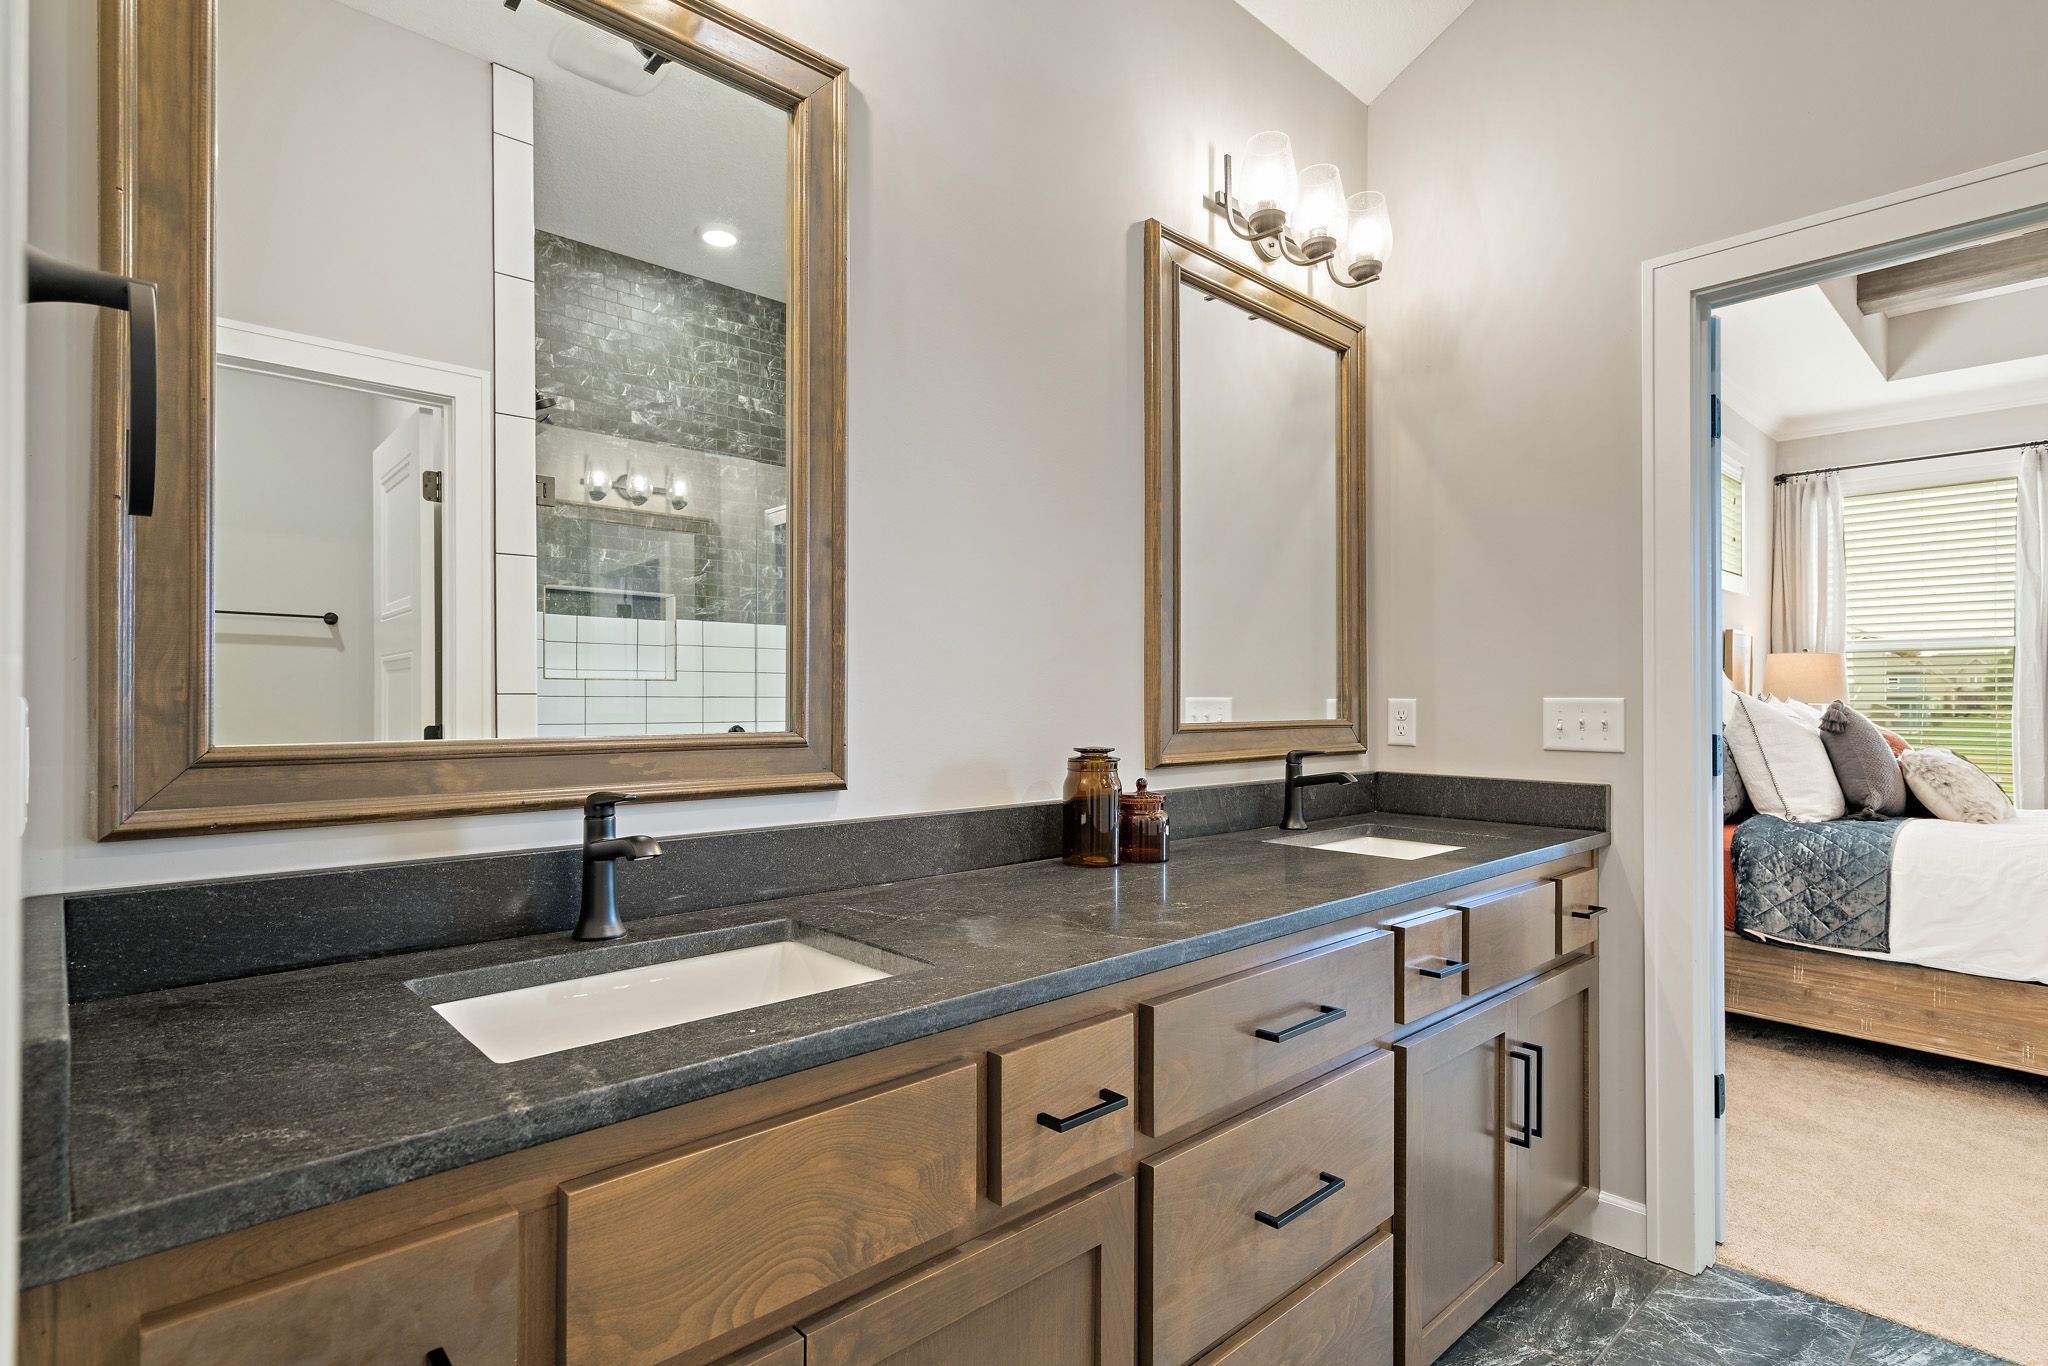 Bathroom featured in the Charlotte By Summit Homes in Kansas City, MO